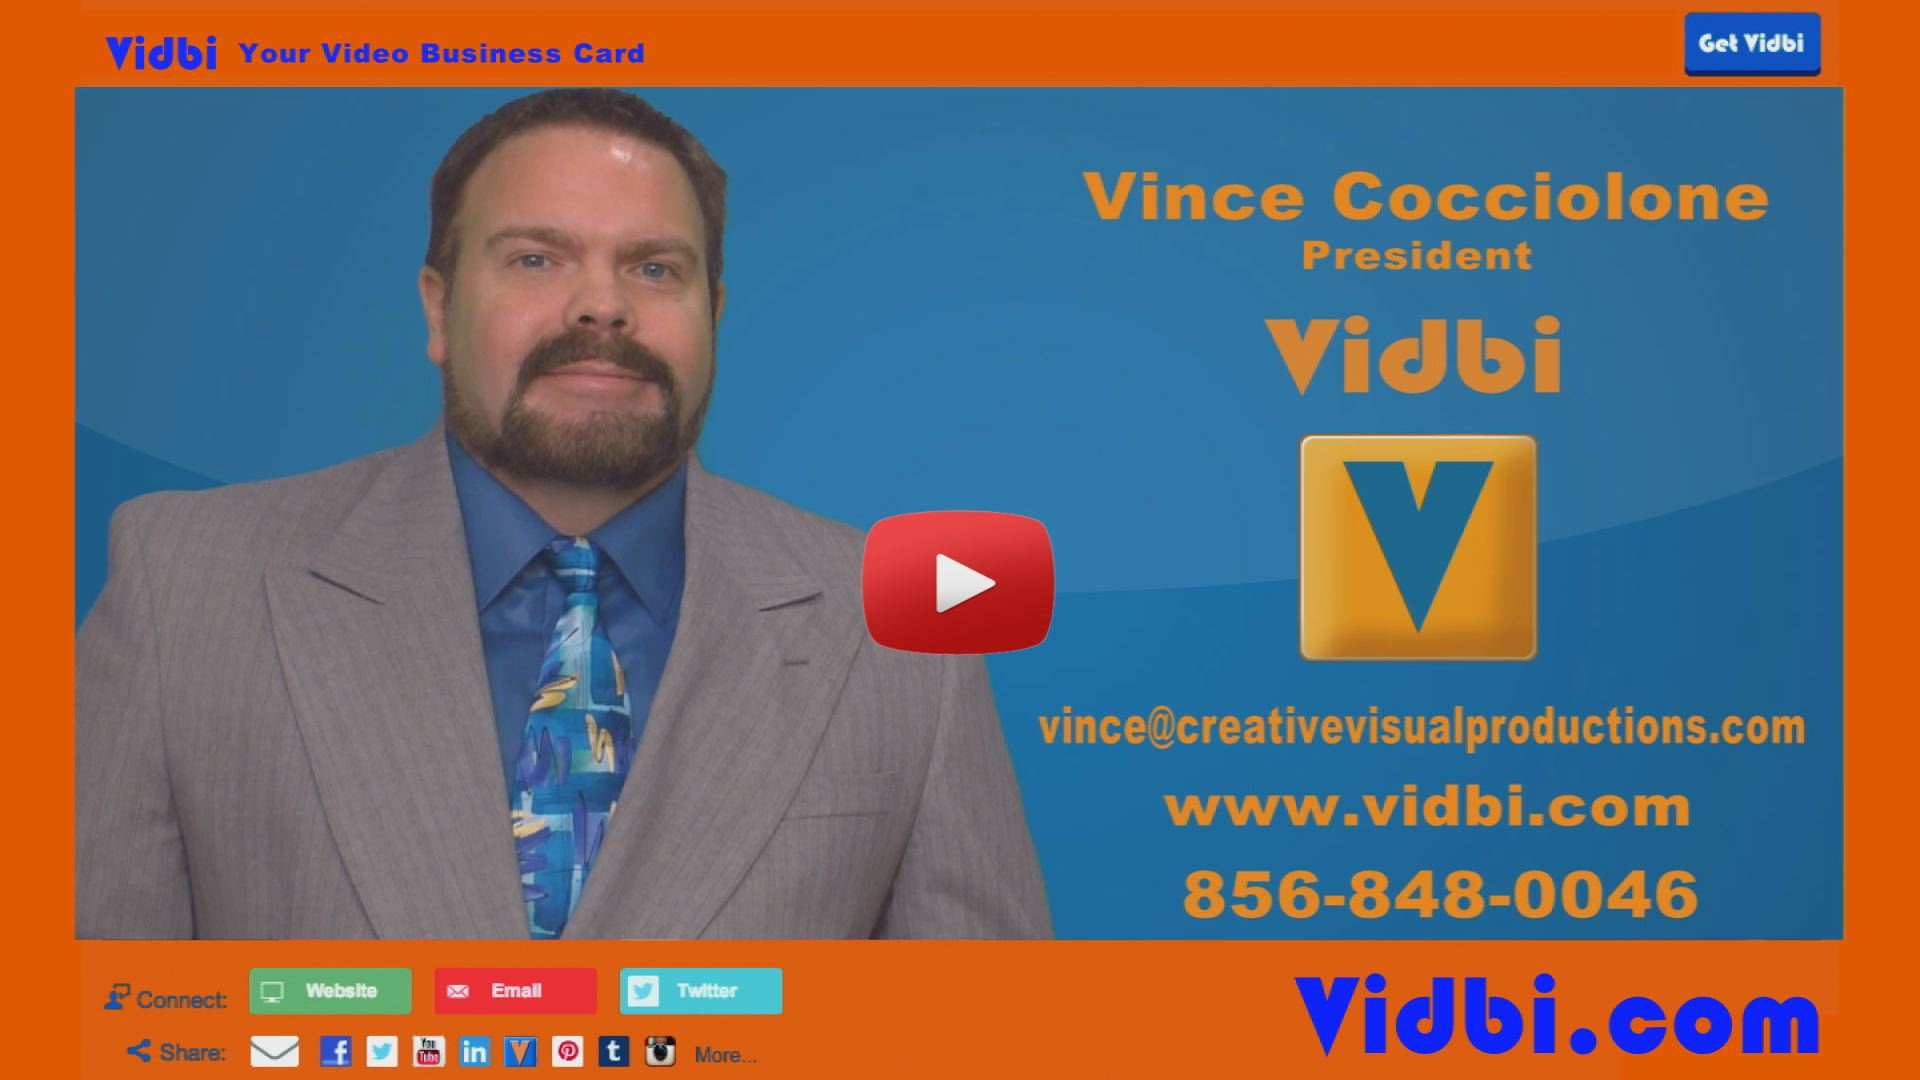 Vince Cocciolone - Creative Visual Productions Vidbi